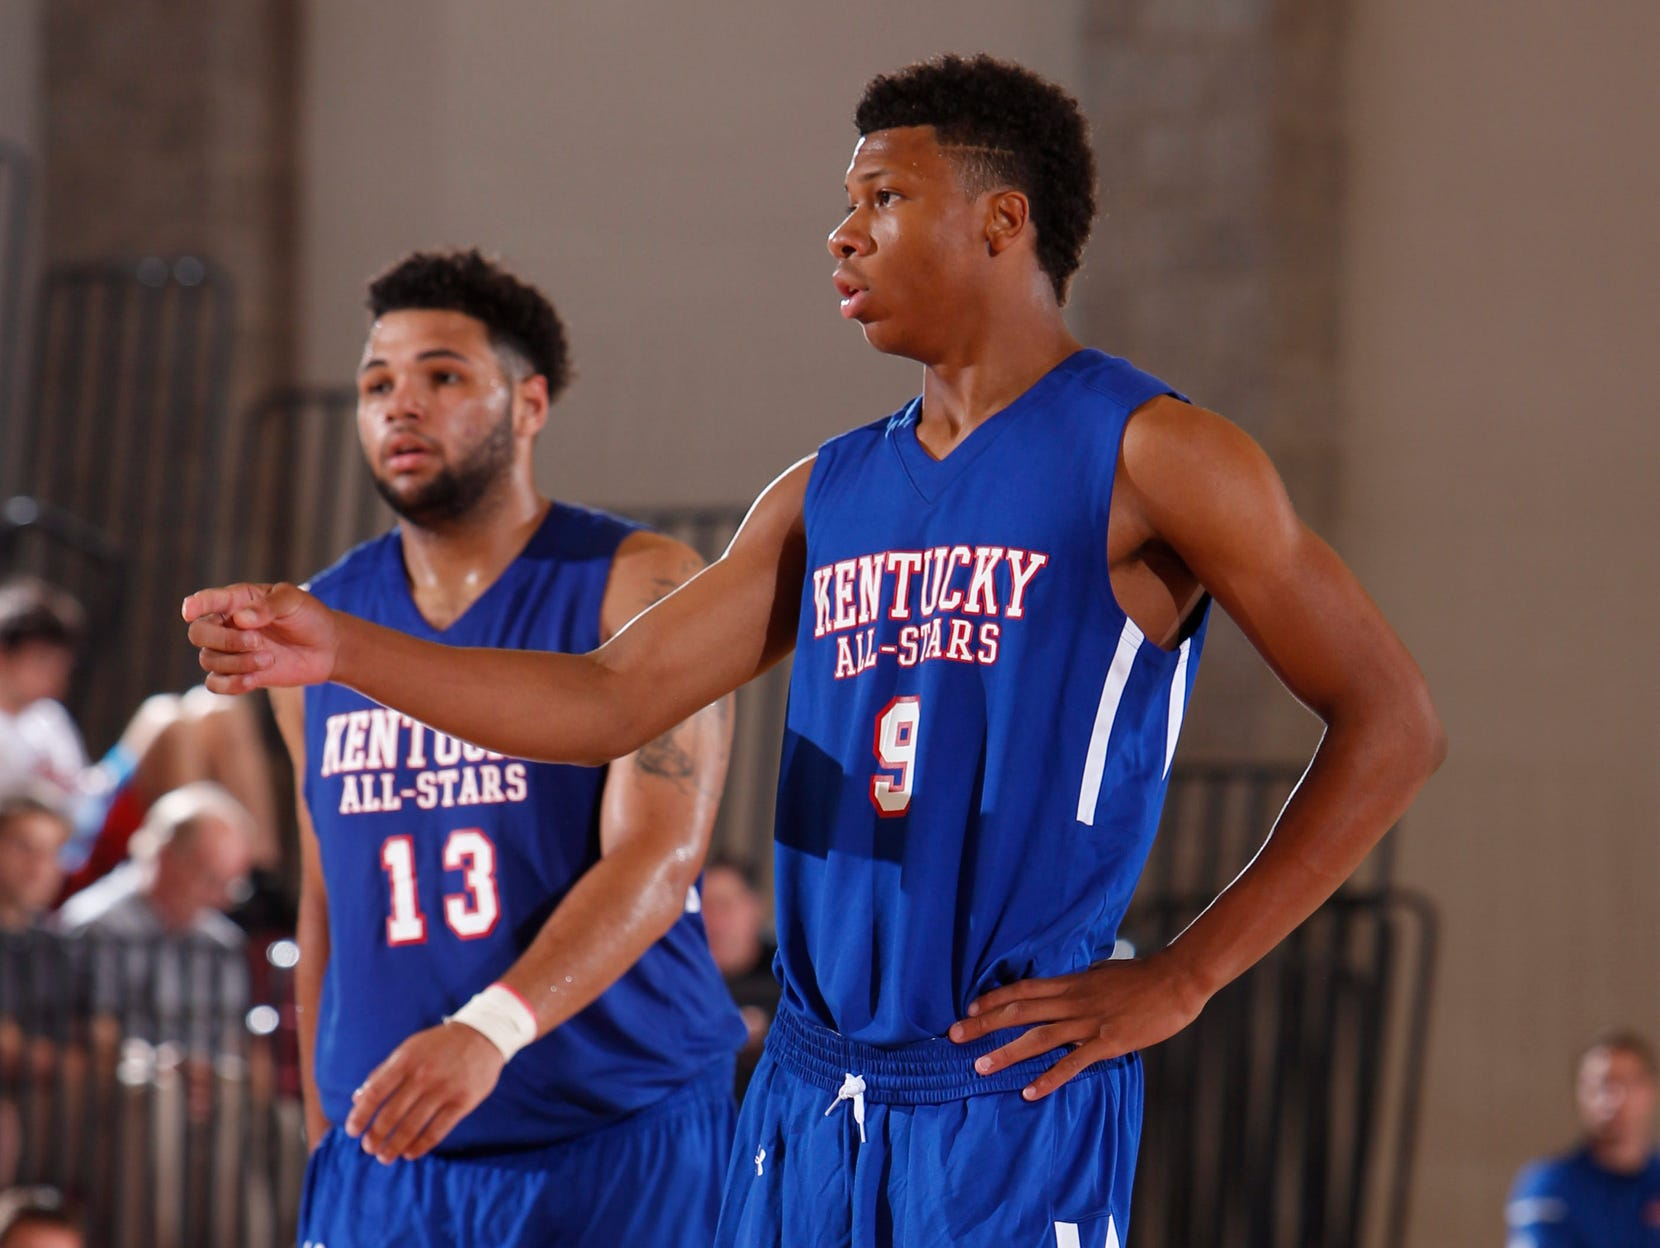 Kentucky All-Star Dwayne Sutton, right and Kentucky All-Star Justin Miller look to the bench for instruction in the second half. The Kentucky versus Indiana Boys All-Star Classic was held, Friday, June 12, 2015 at the Clive Beck Center in Lexington. Photo by Jonathan Palmer/Special to the C-J